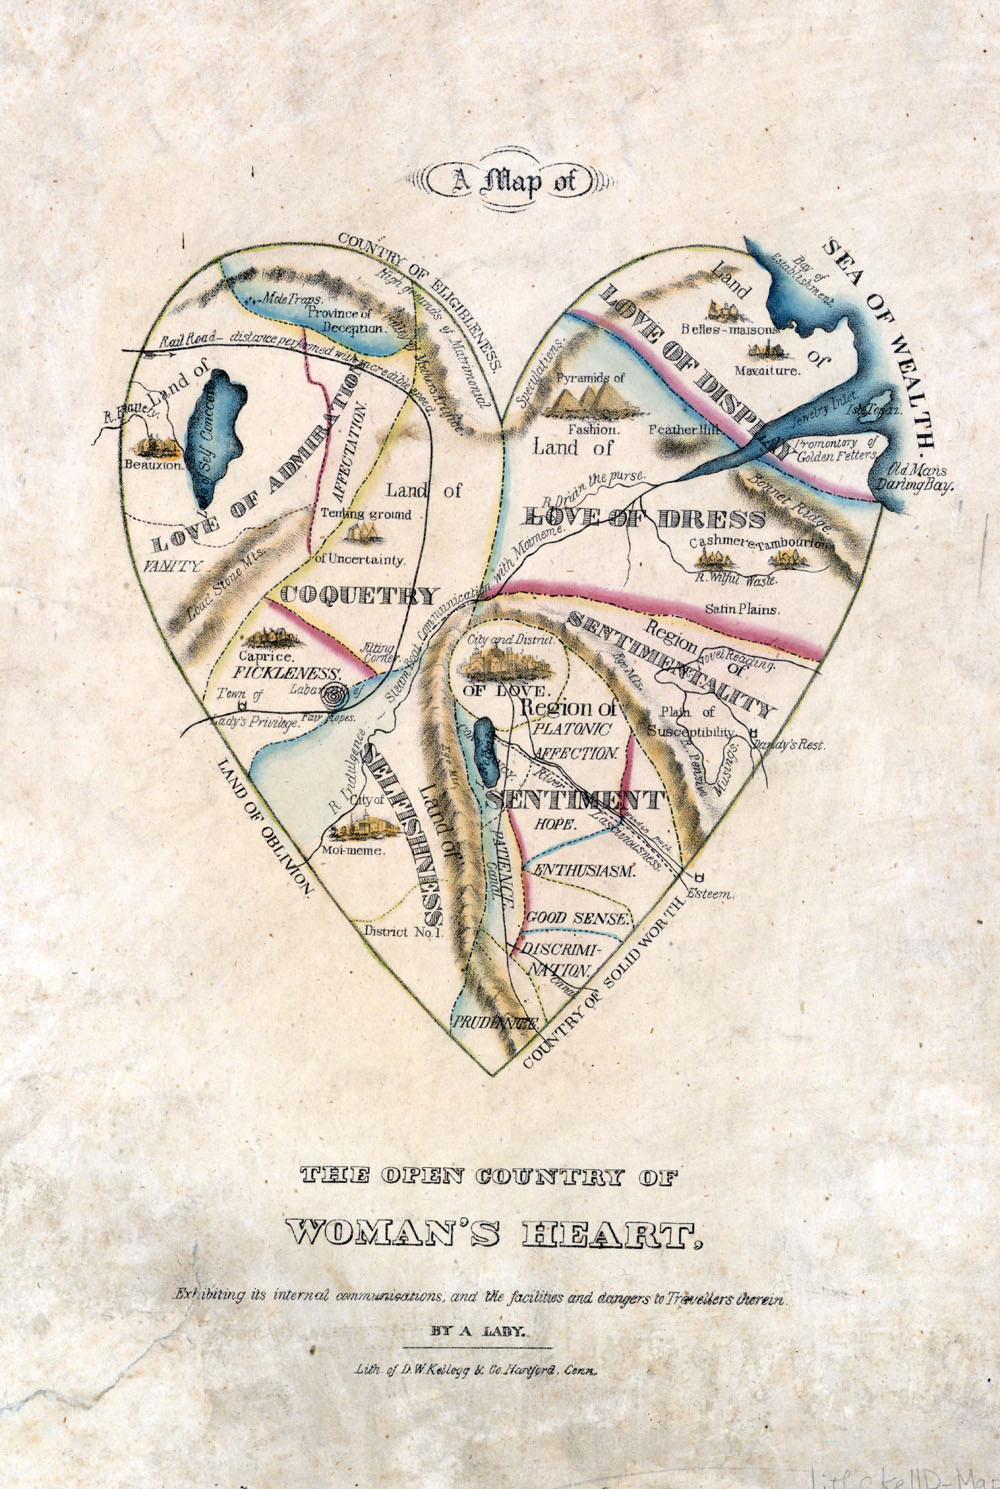 nprfreshair:  Good morning and happy Valentine's Day! Here is a map of a woman's heart circa the 1800s.  explore-blog:   A map of woman's heart from the 1800s, equal parts amusing and appalling.    Oh lordy. At least we can all laugh at it today. Happy Valentine's Day, my science loves!